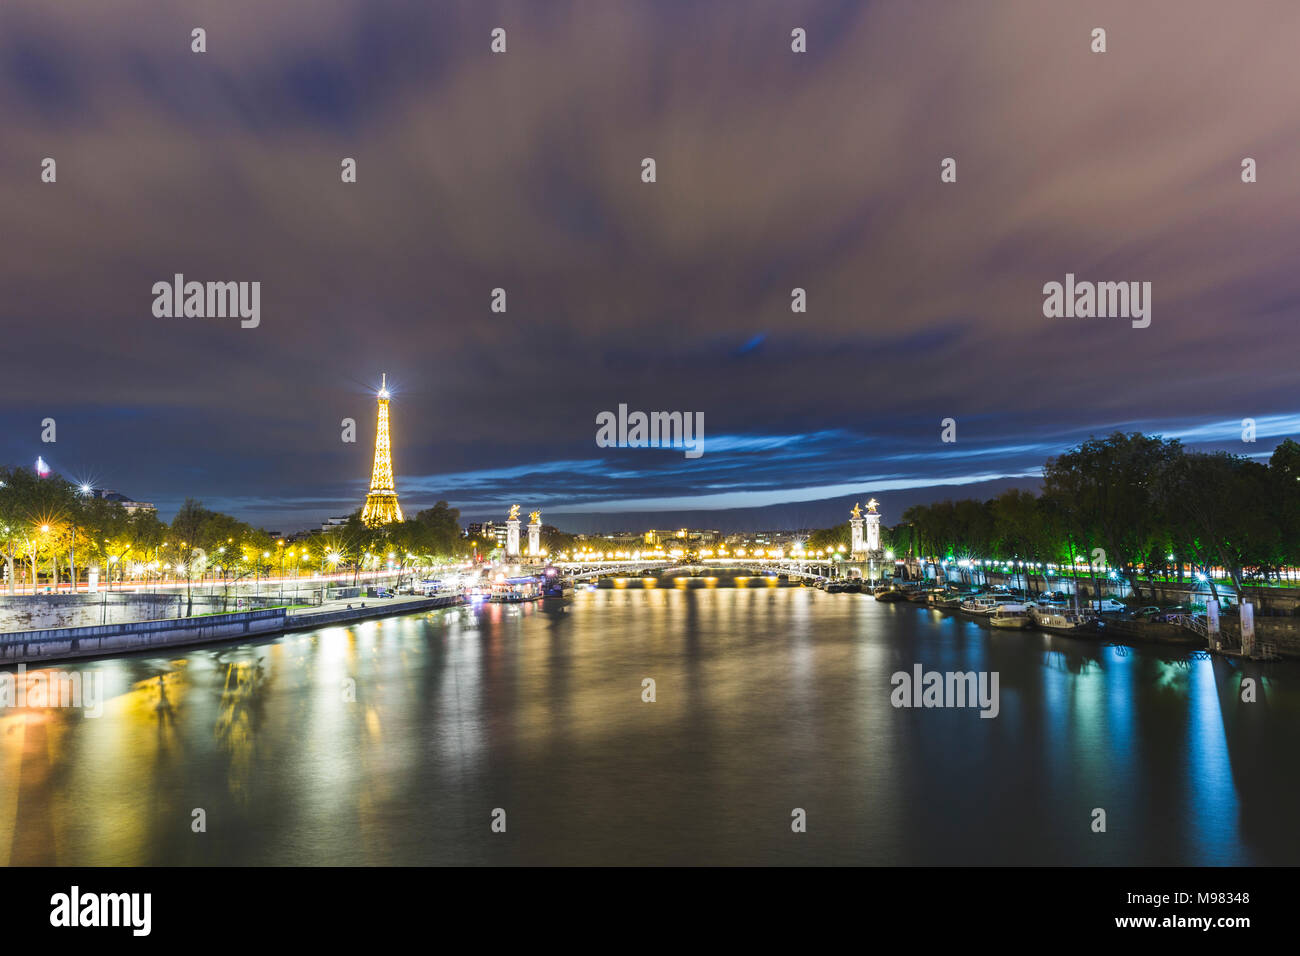 France, Ile-de-France, Paris, panoramic view of the city at night - Stock Image